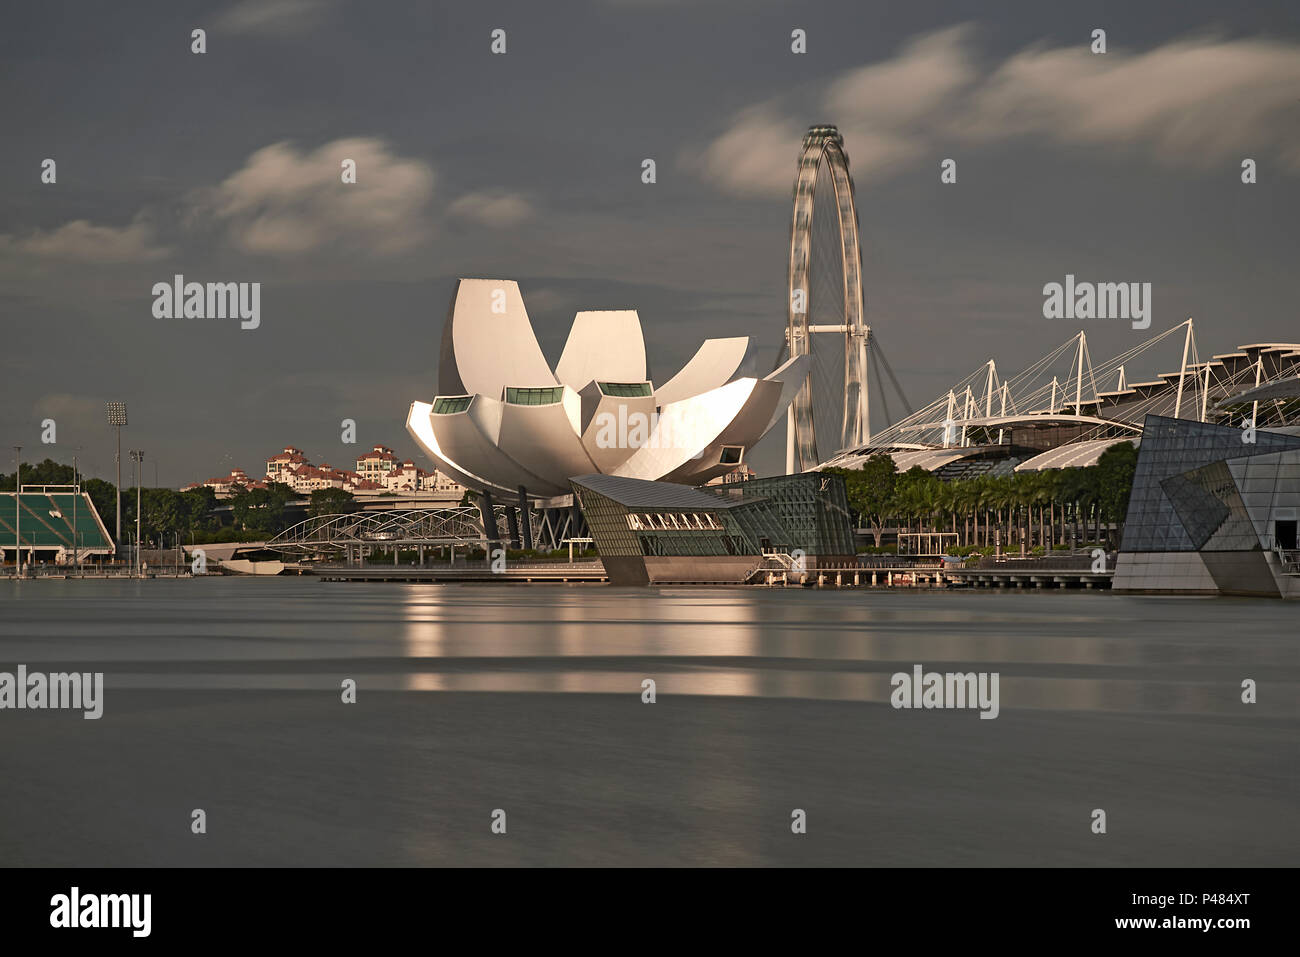 Landscape of the MArina Bay area of Singapore with the famous Marina Bay Sands building and the modern architecture of the Science Museum - Stock Image